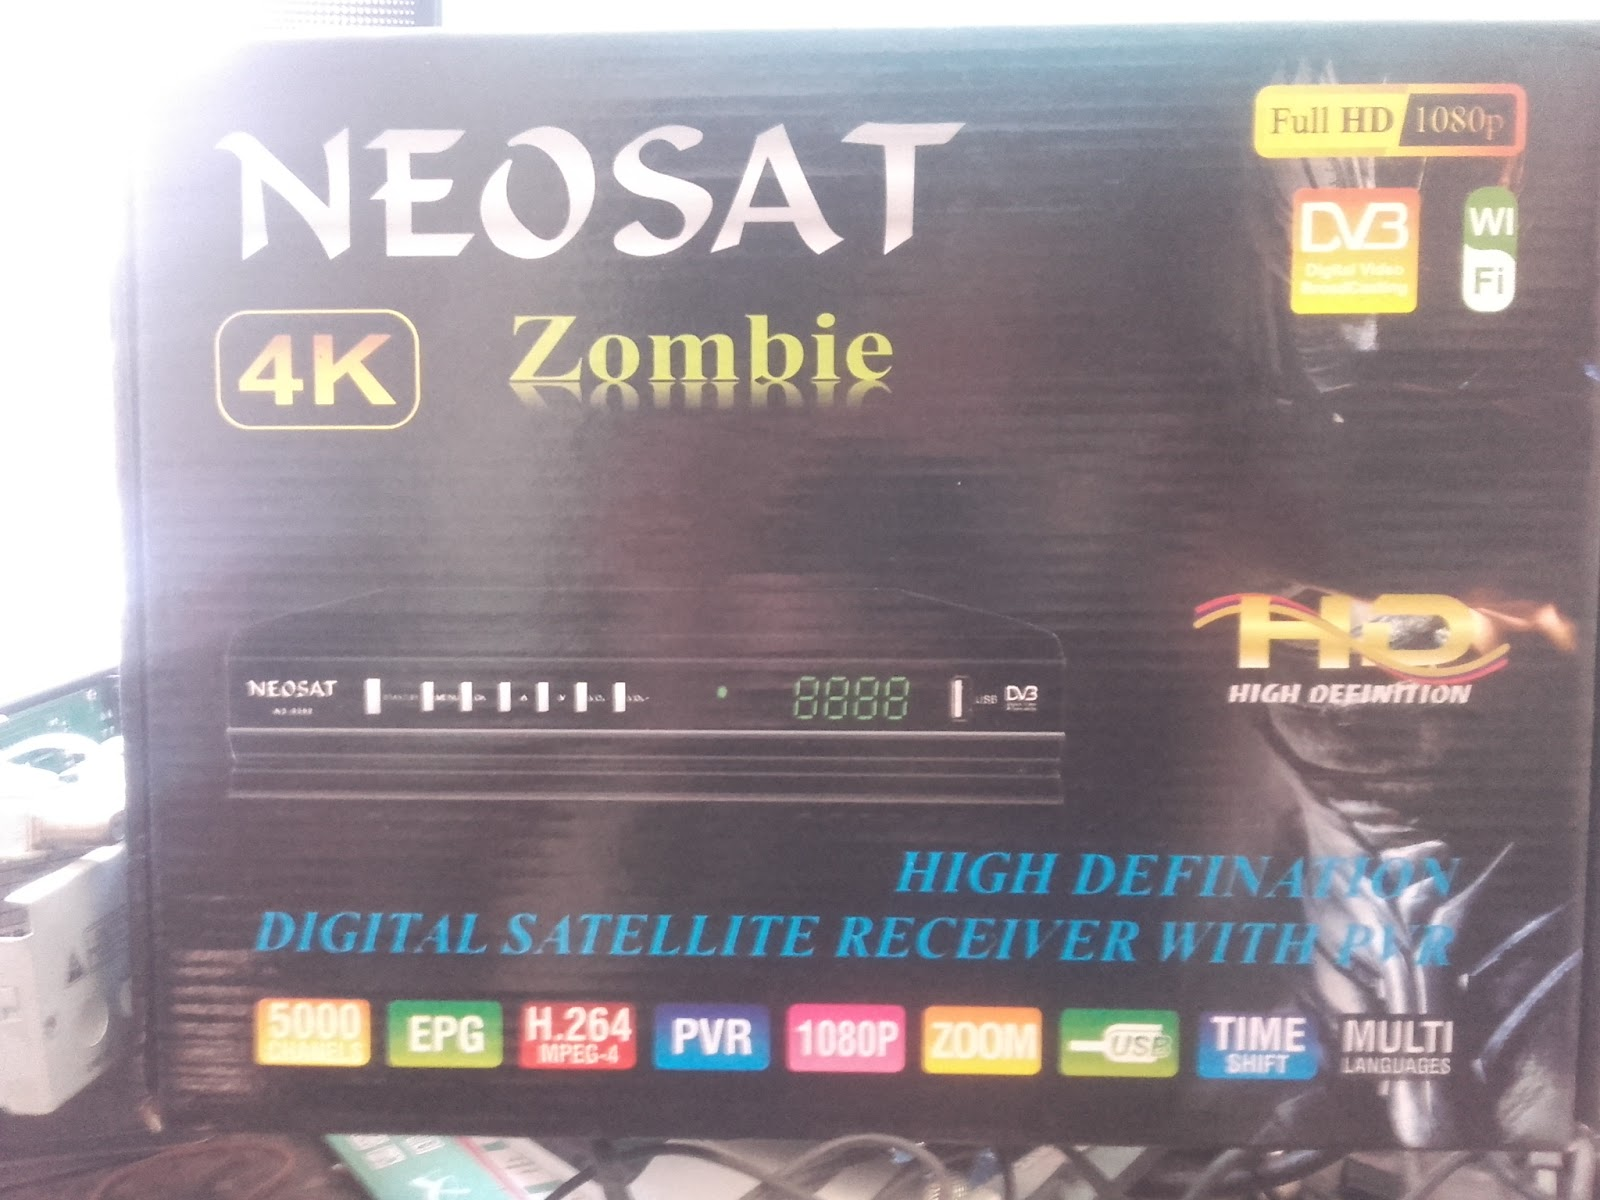 NEOSAT ZOMBIA HW203 00 017 POWERVU KEY SOFTWARE DOWNLOAD - FILE YOU